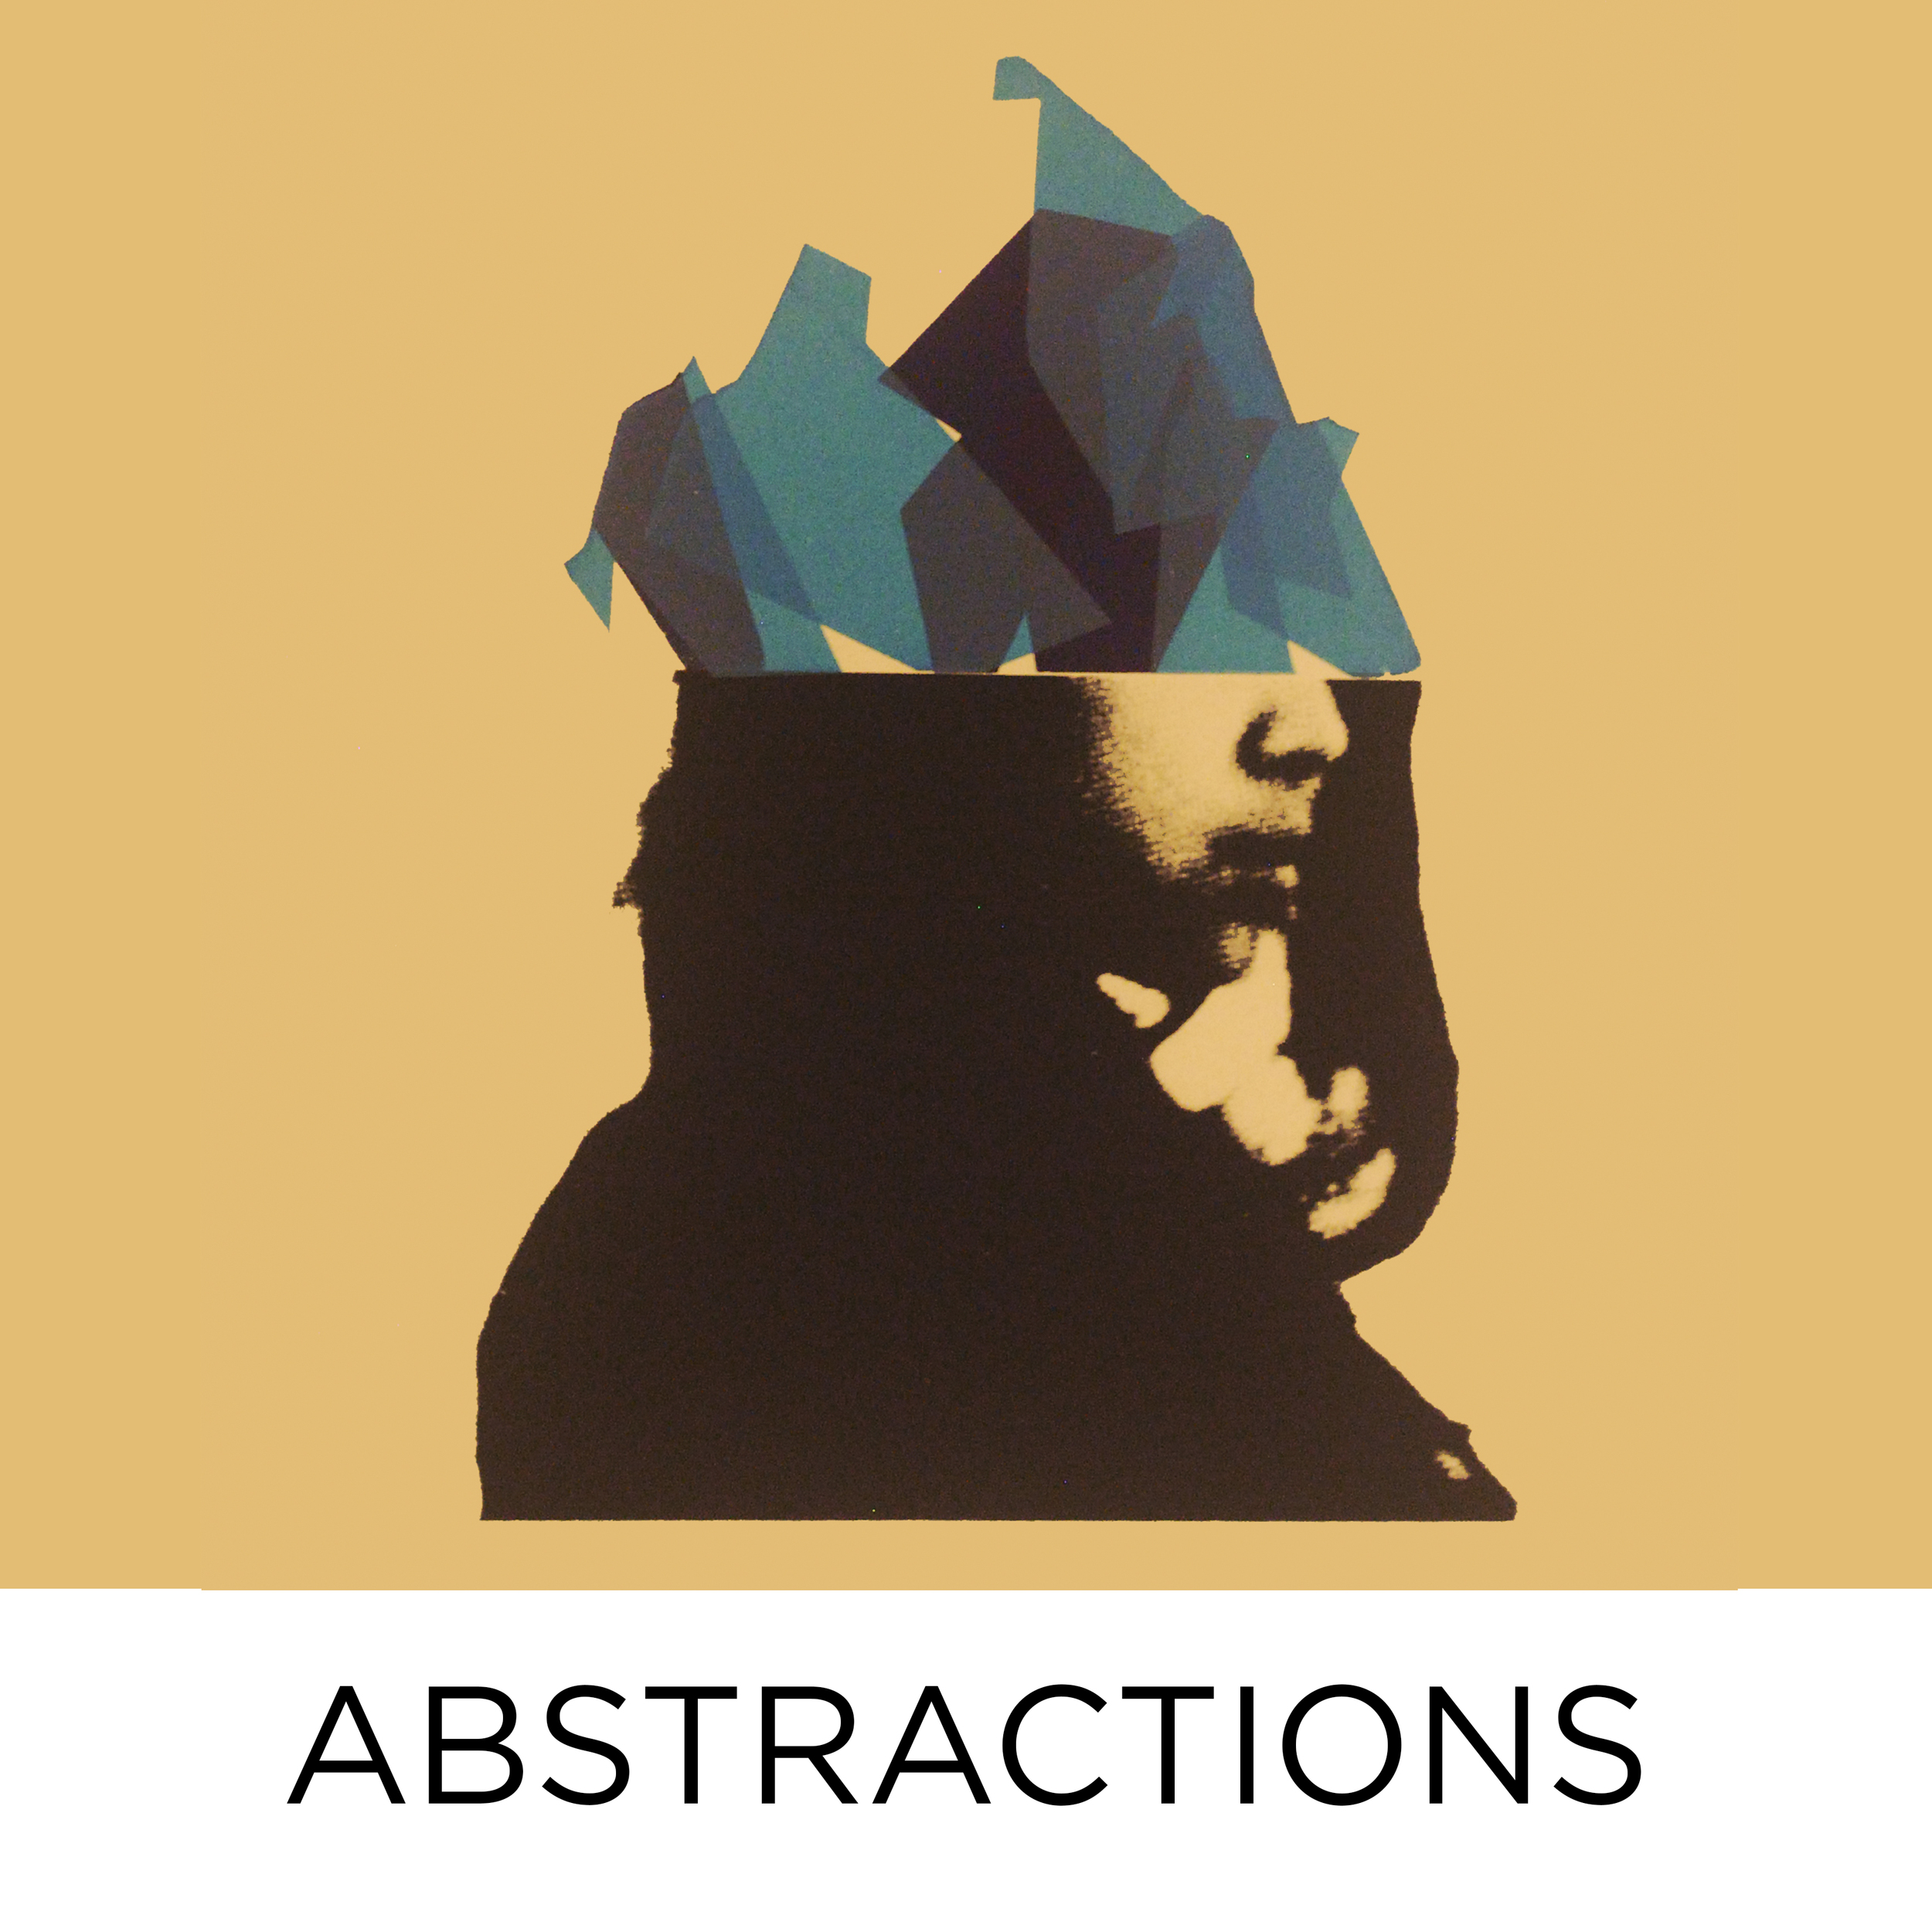 abstractions.jpg